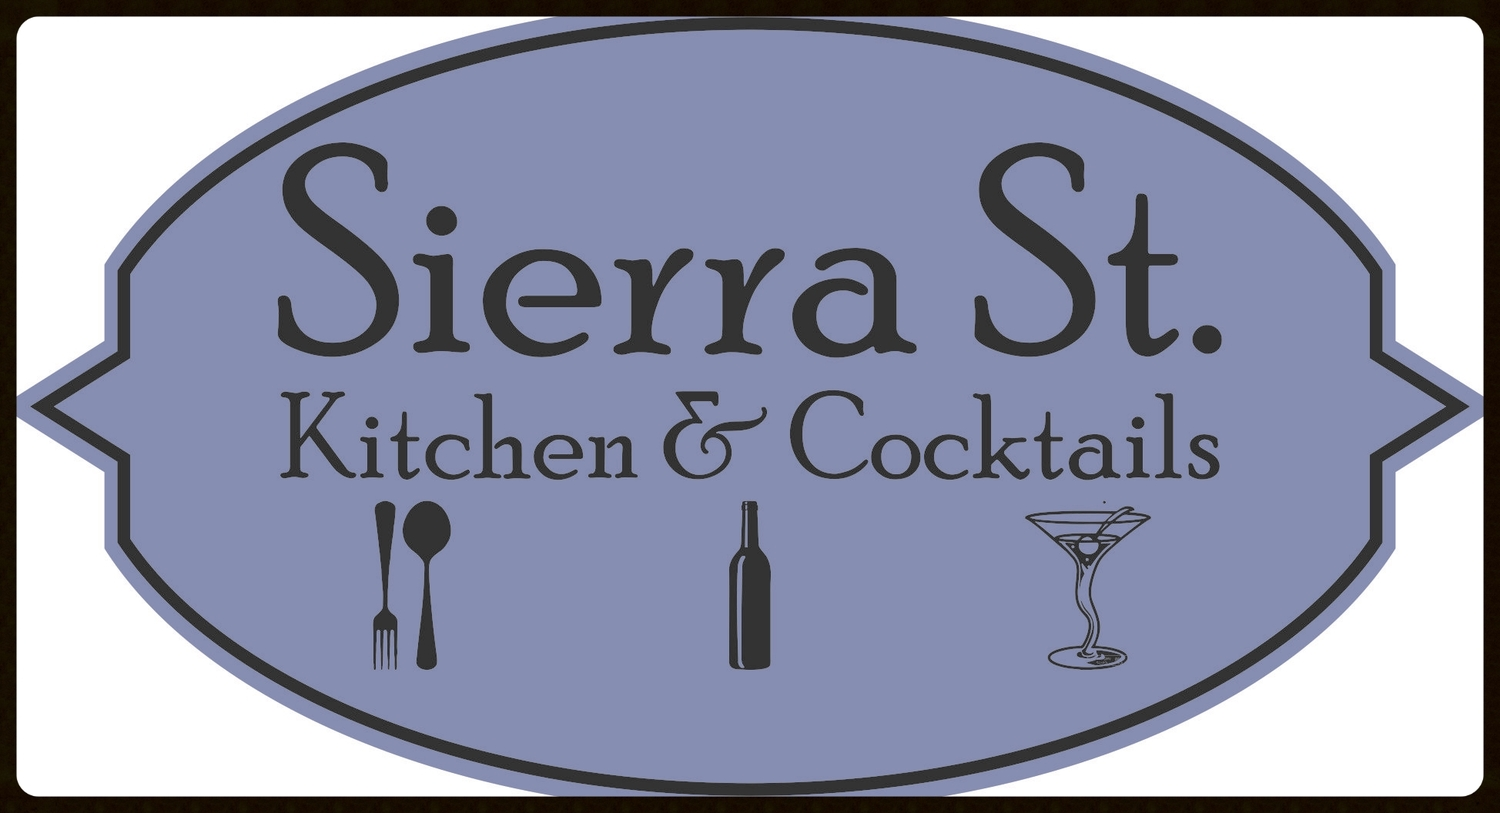 Sierra St. Kitchen & Cocktails